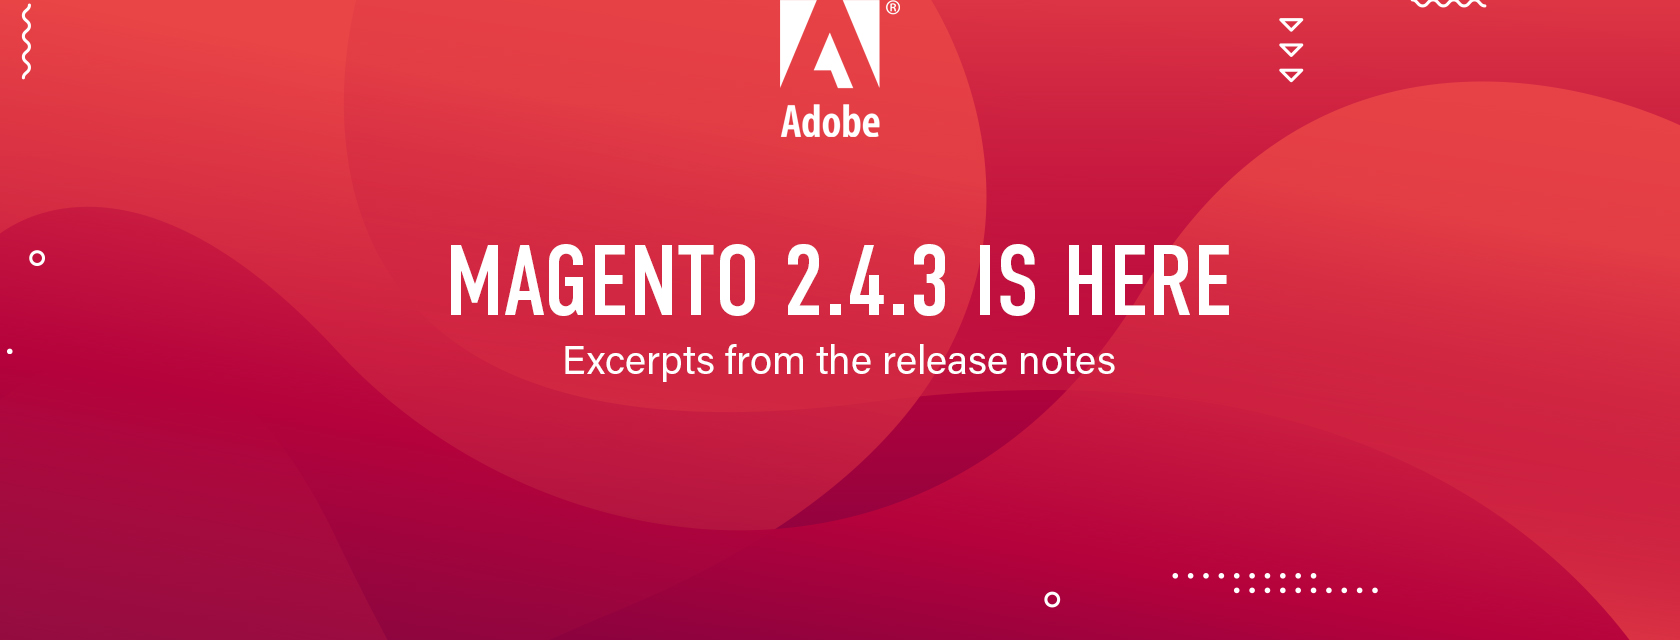 MAGENTO 2.4.3 RELEASE AND UPDATES